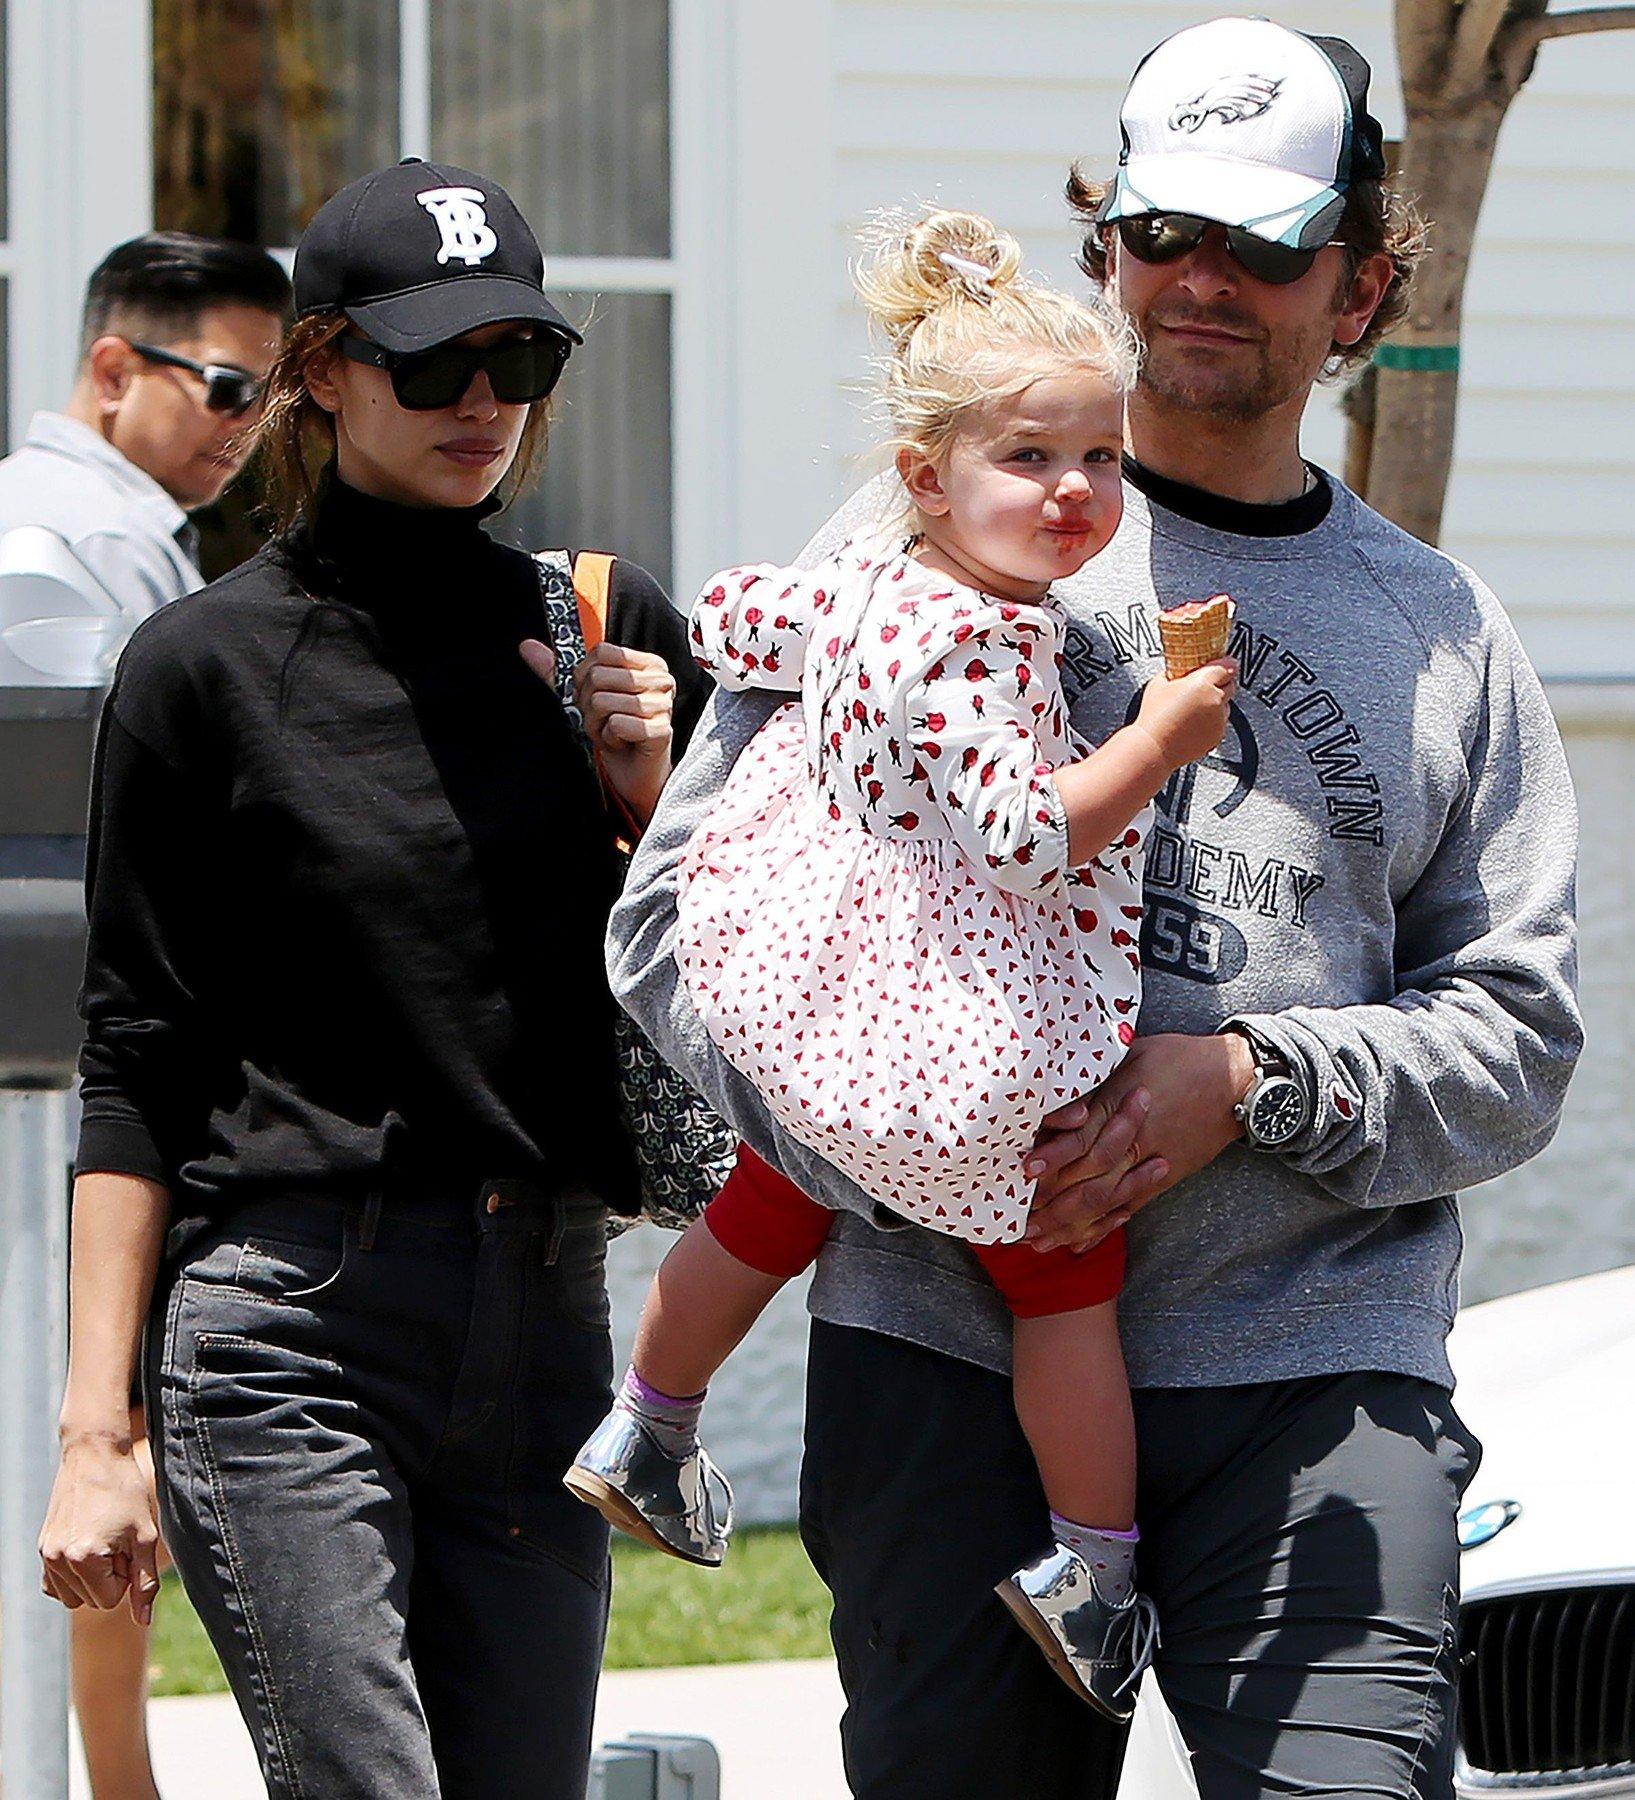 Irina Shayk, Lea De Seine Shayk Cooper and Bradley Cooper Bradley Cooper and Irina Shayk out and about, Brentwood,  California, USA - 25 May 2019, Image: 437359270, License: Rights-managed, Restrictions: , Model Release: no, Credit line: Profimedia, TEMP Rex Features